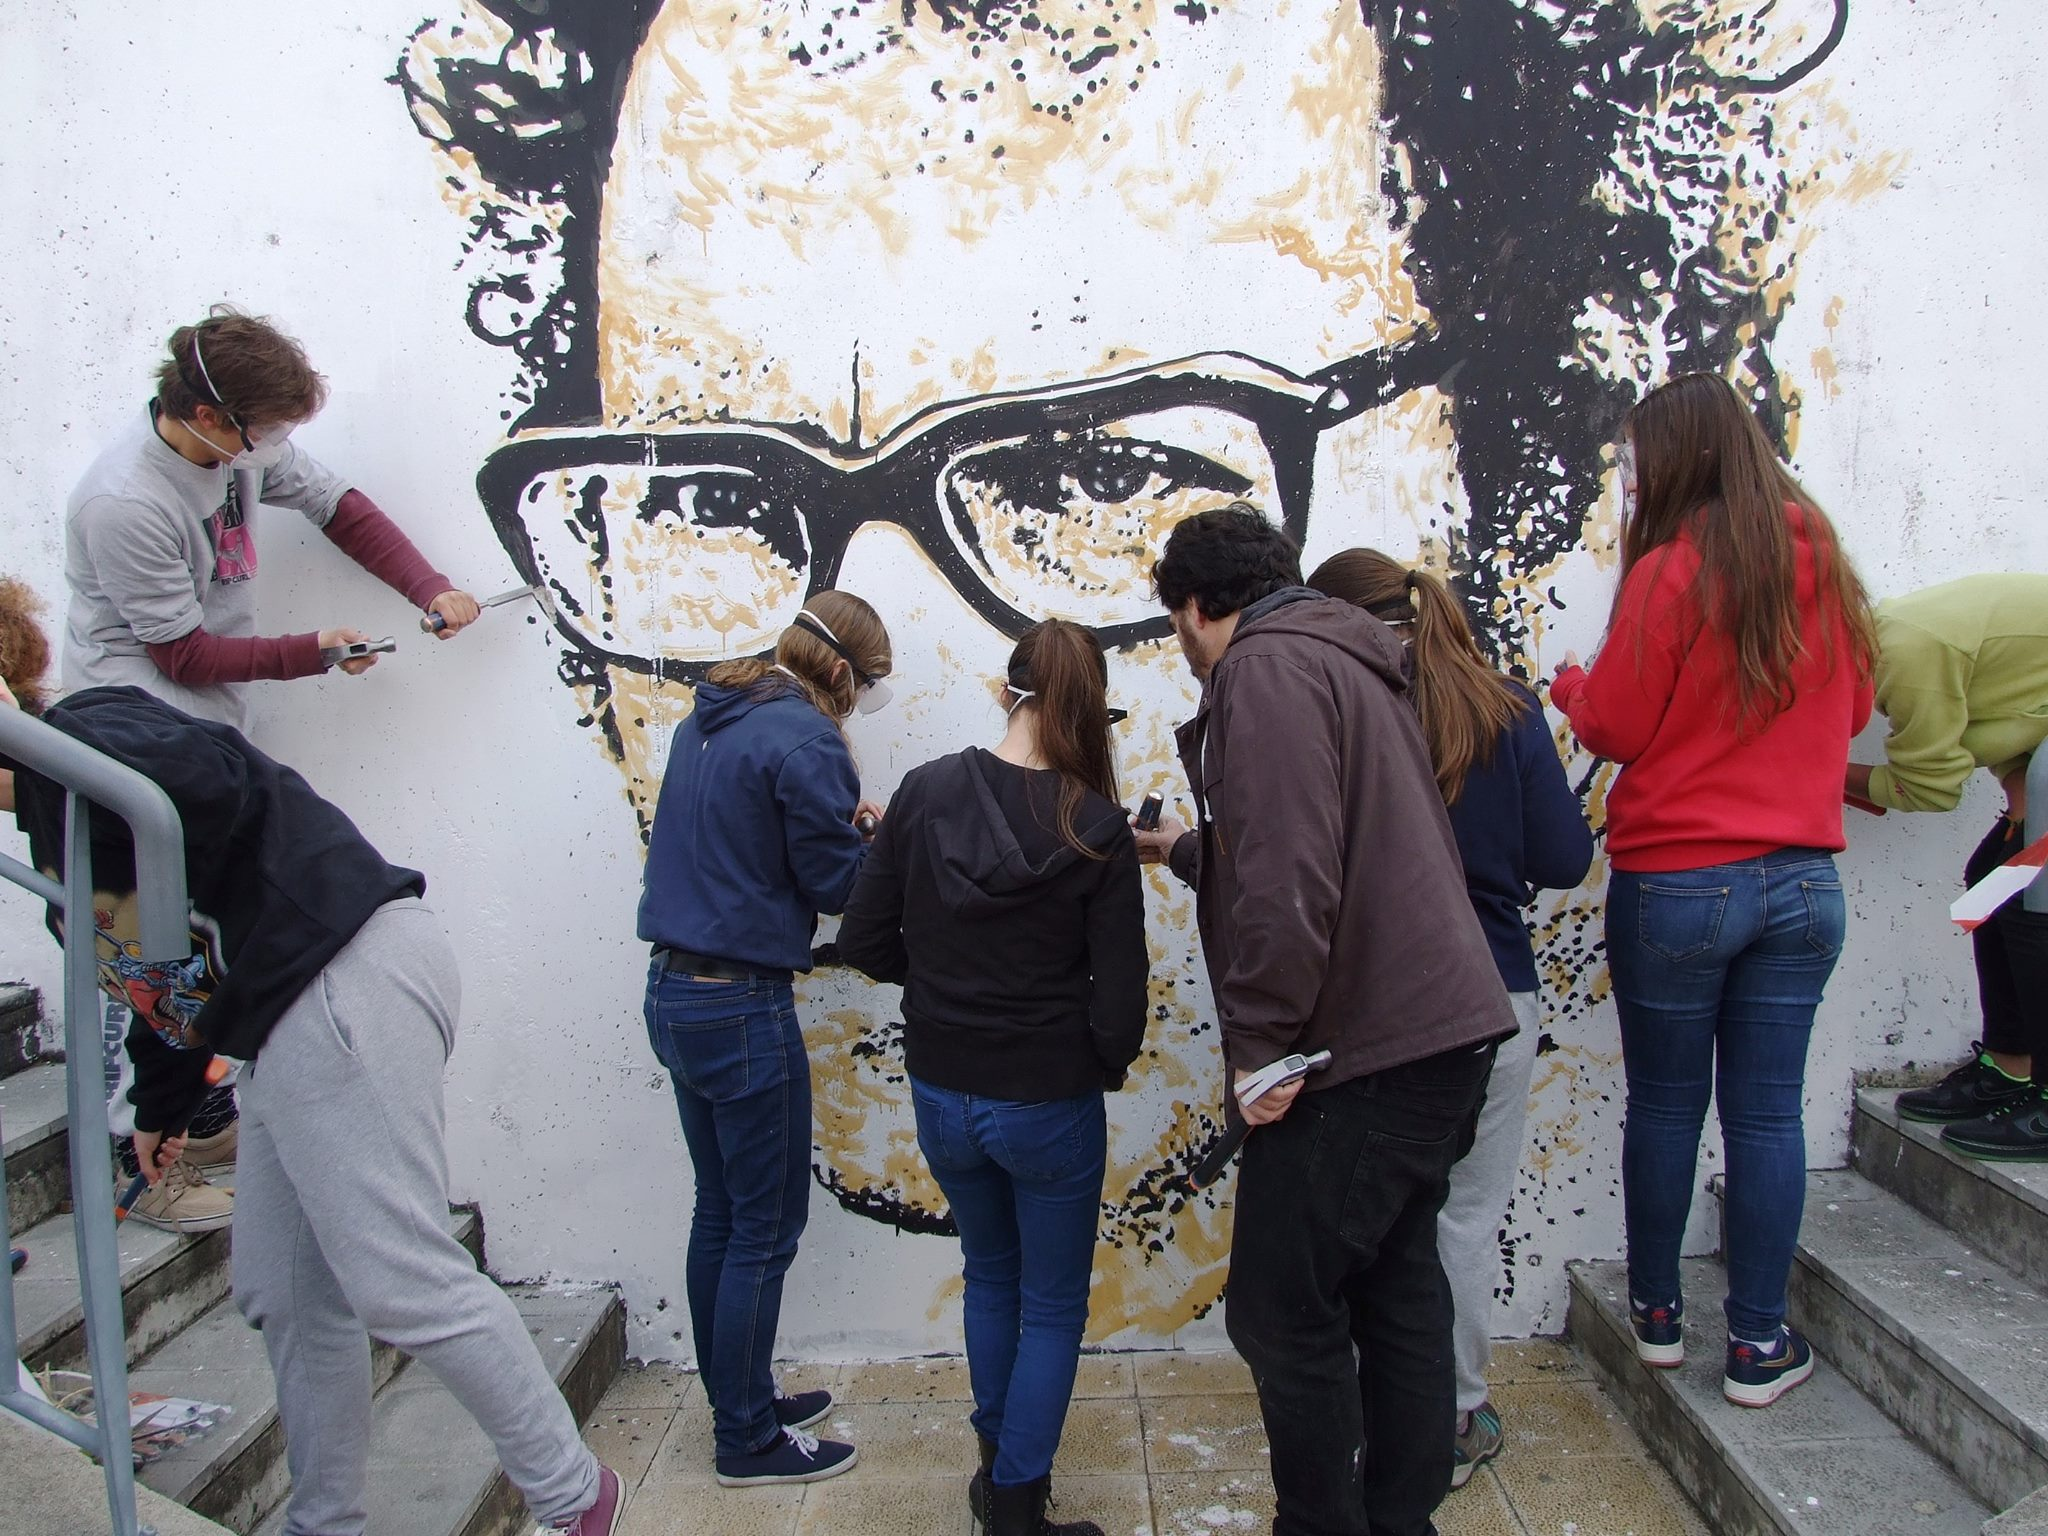 vhils-new-portrait-of-zeca-afonso-in-lisbon-portugal-02